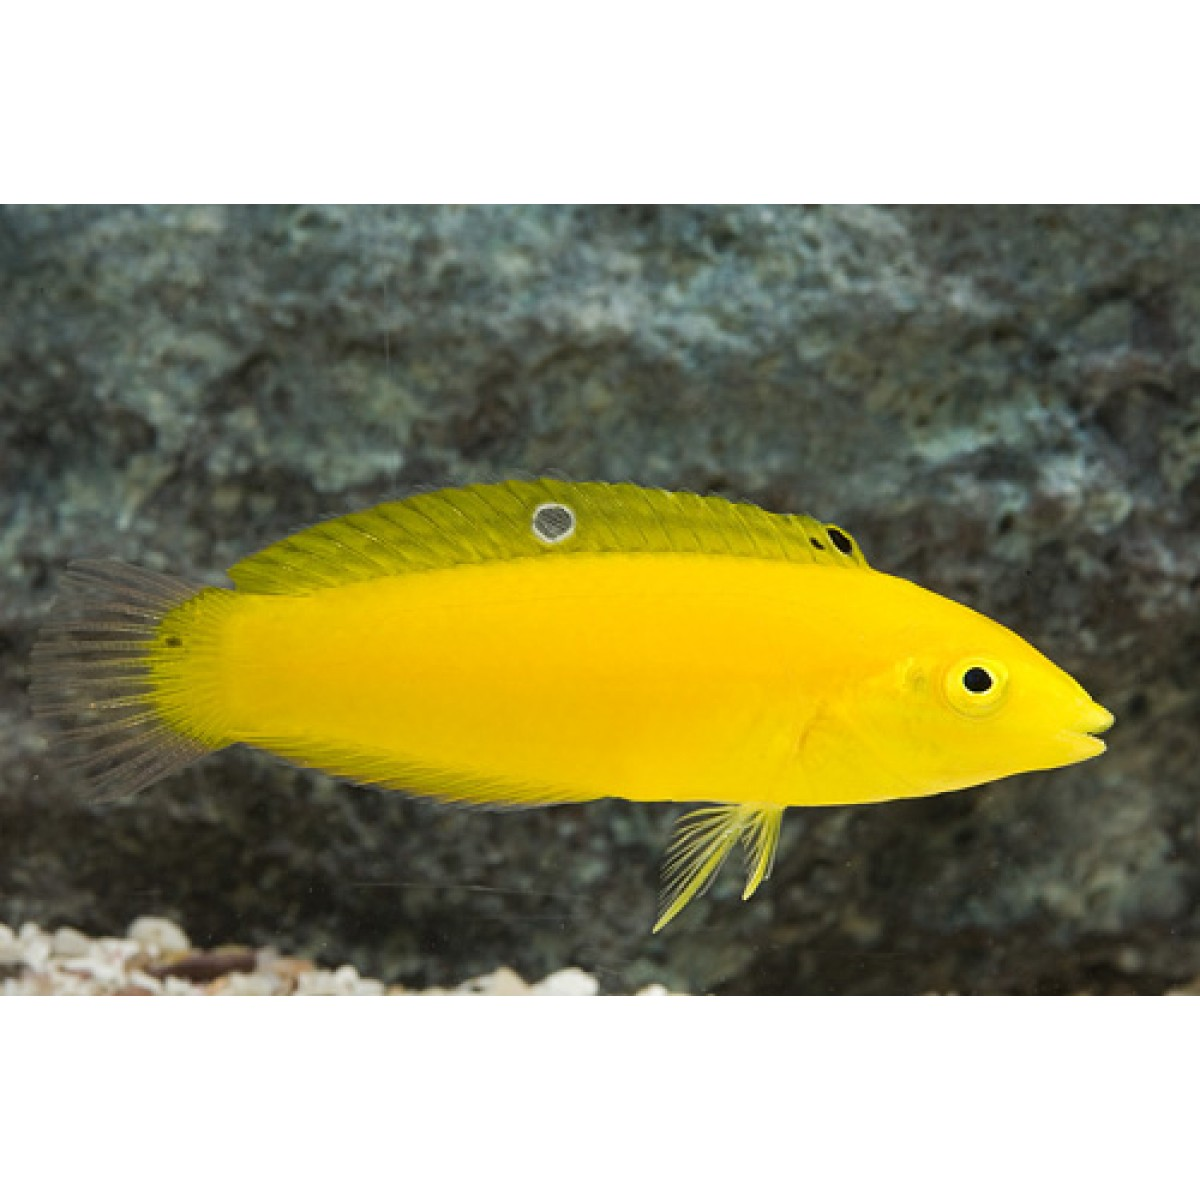 Wrasse Yellow Coris 4 a 5 cm (NOVO)